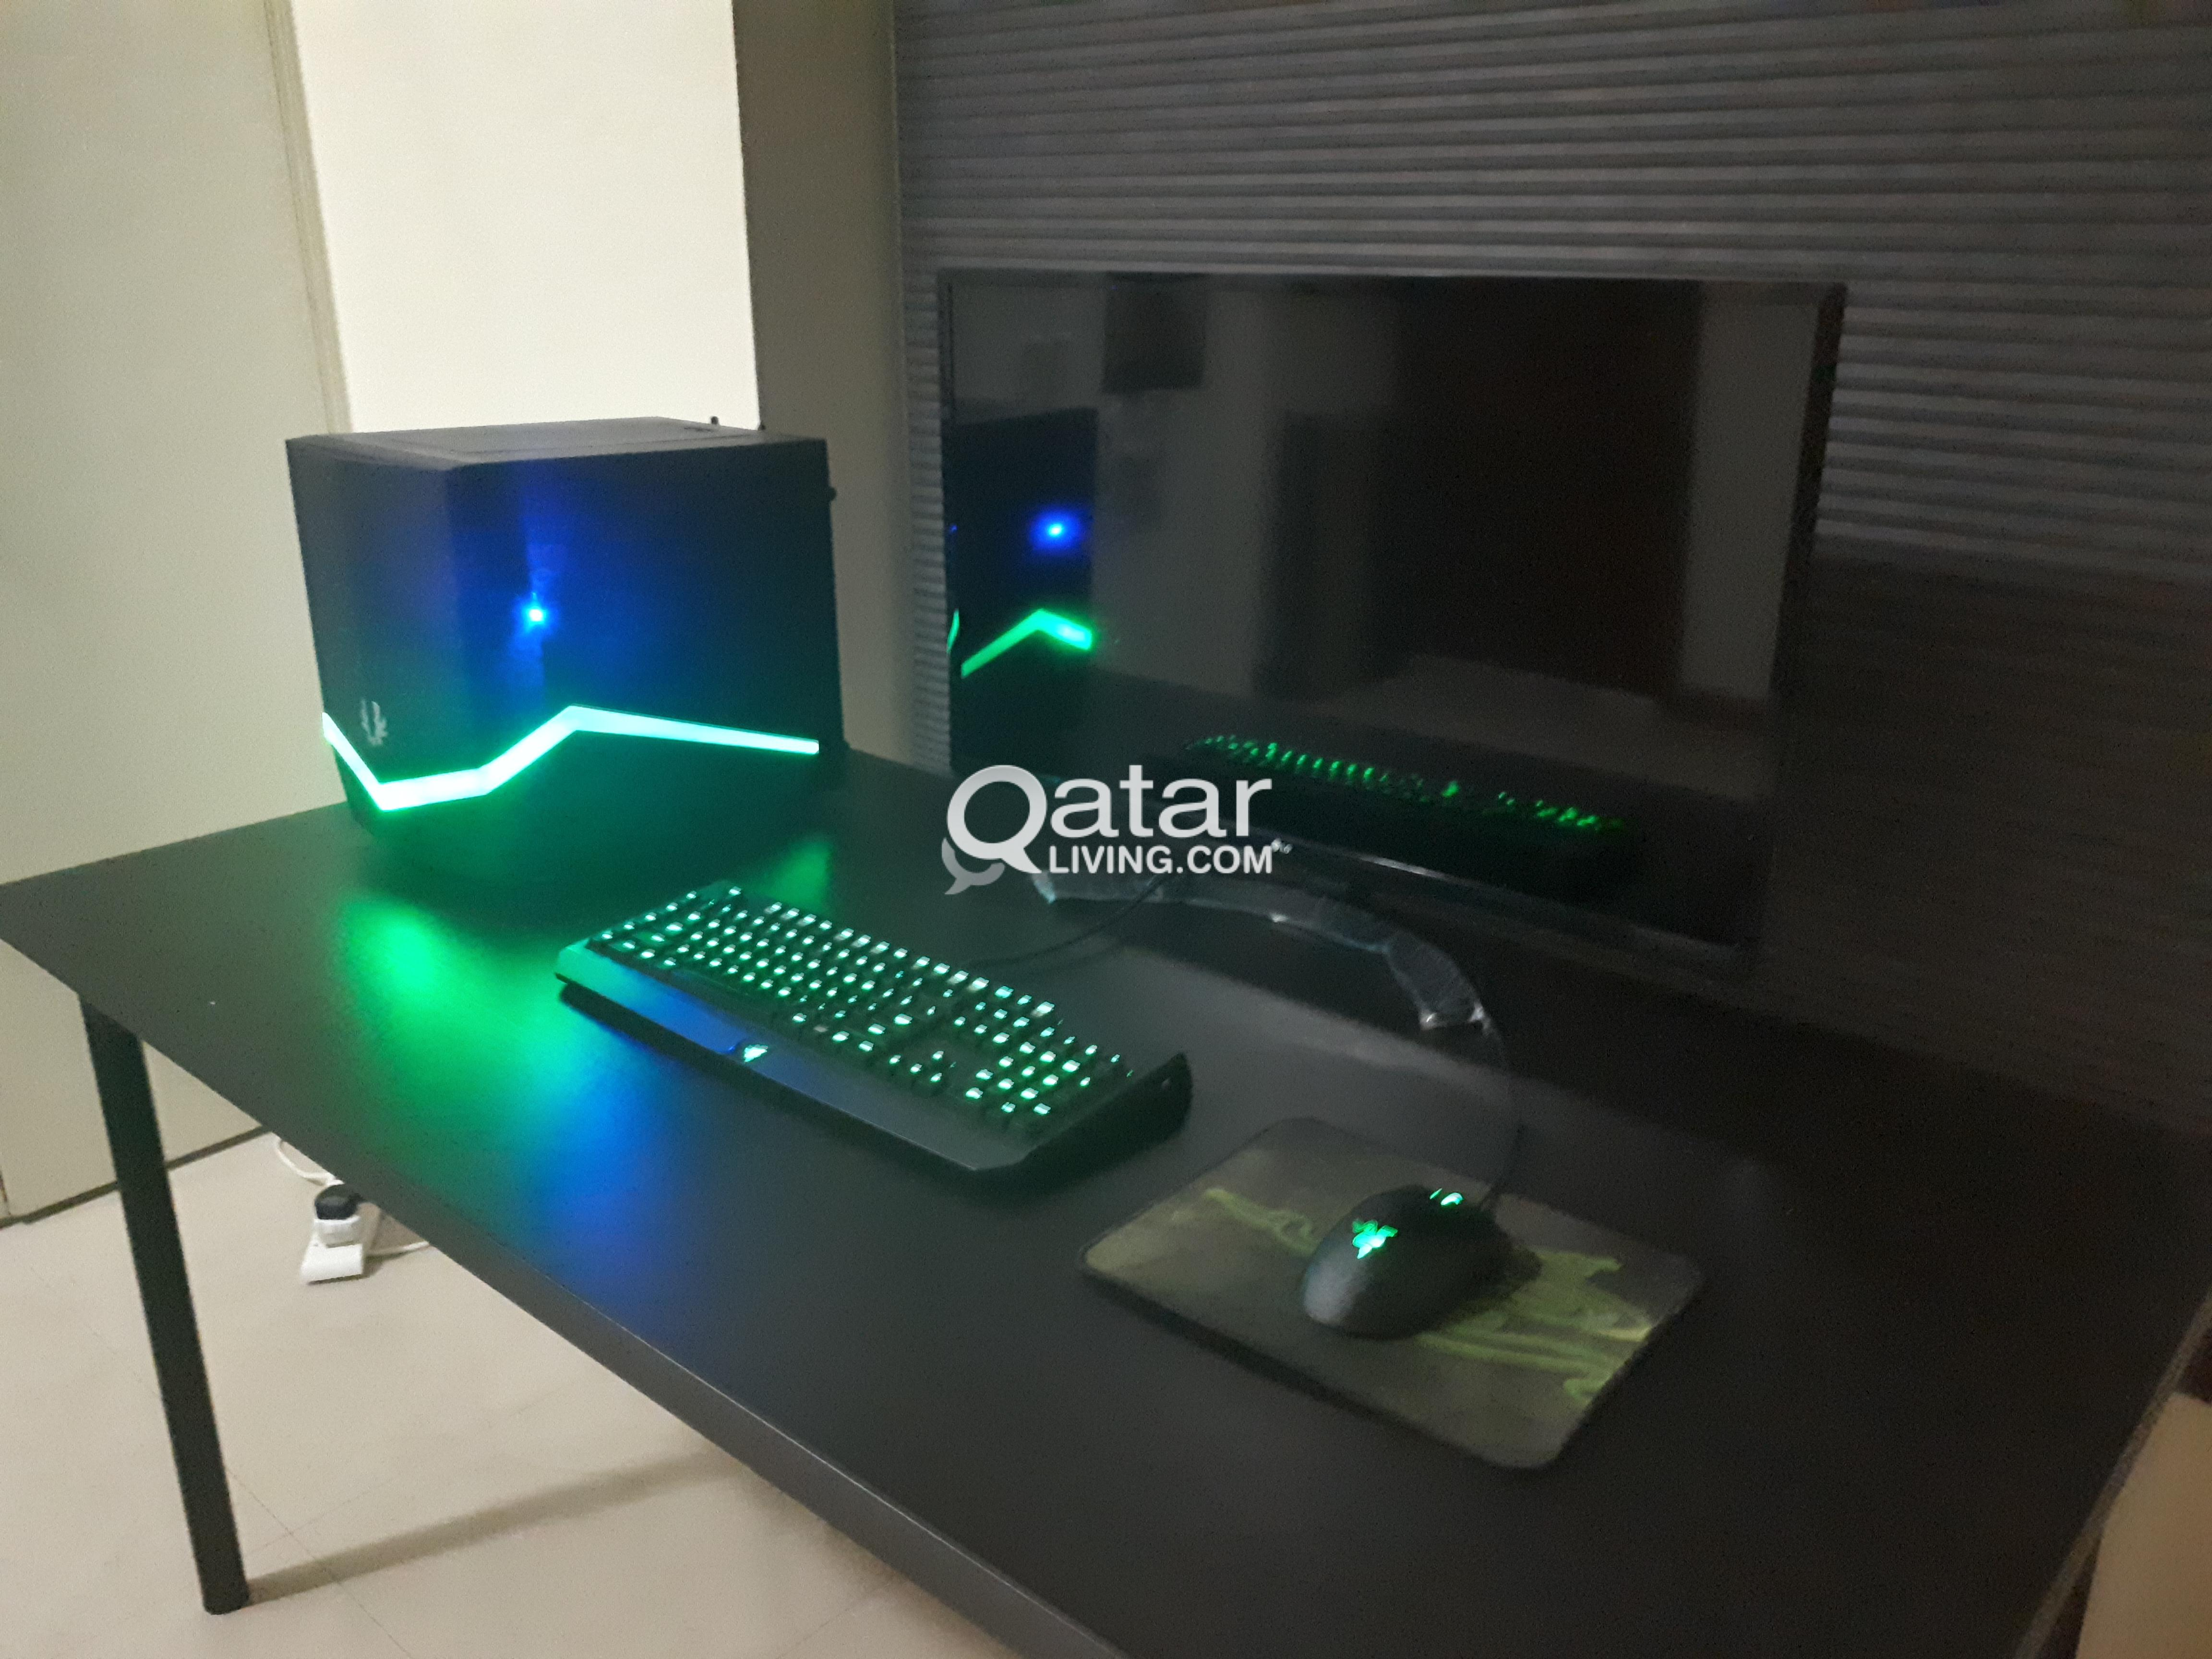 Newly Built gaming puter and setup for sale